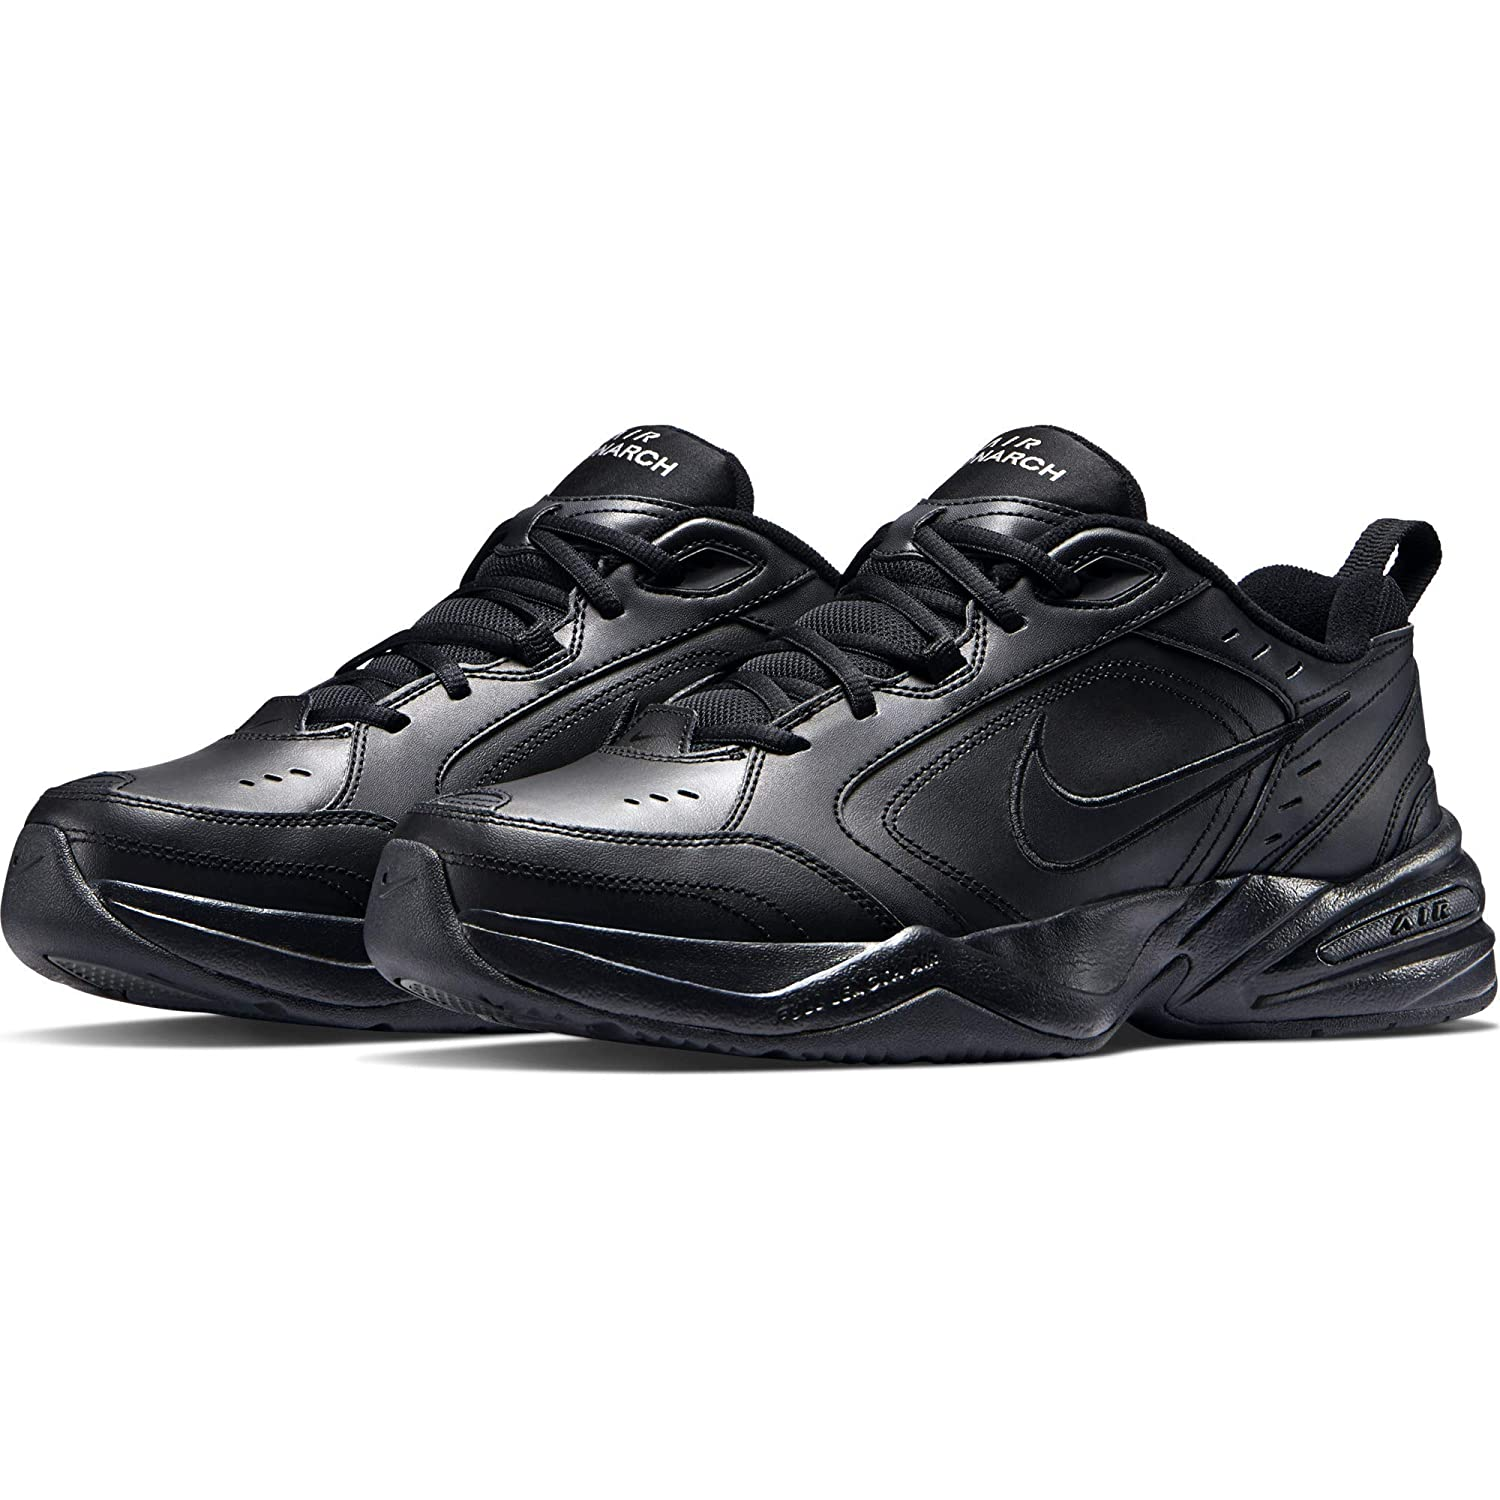 custom select for clearance classcic Nike Men's Air Monarch IV Cross Trainer